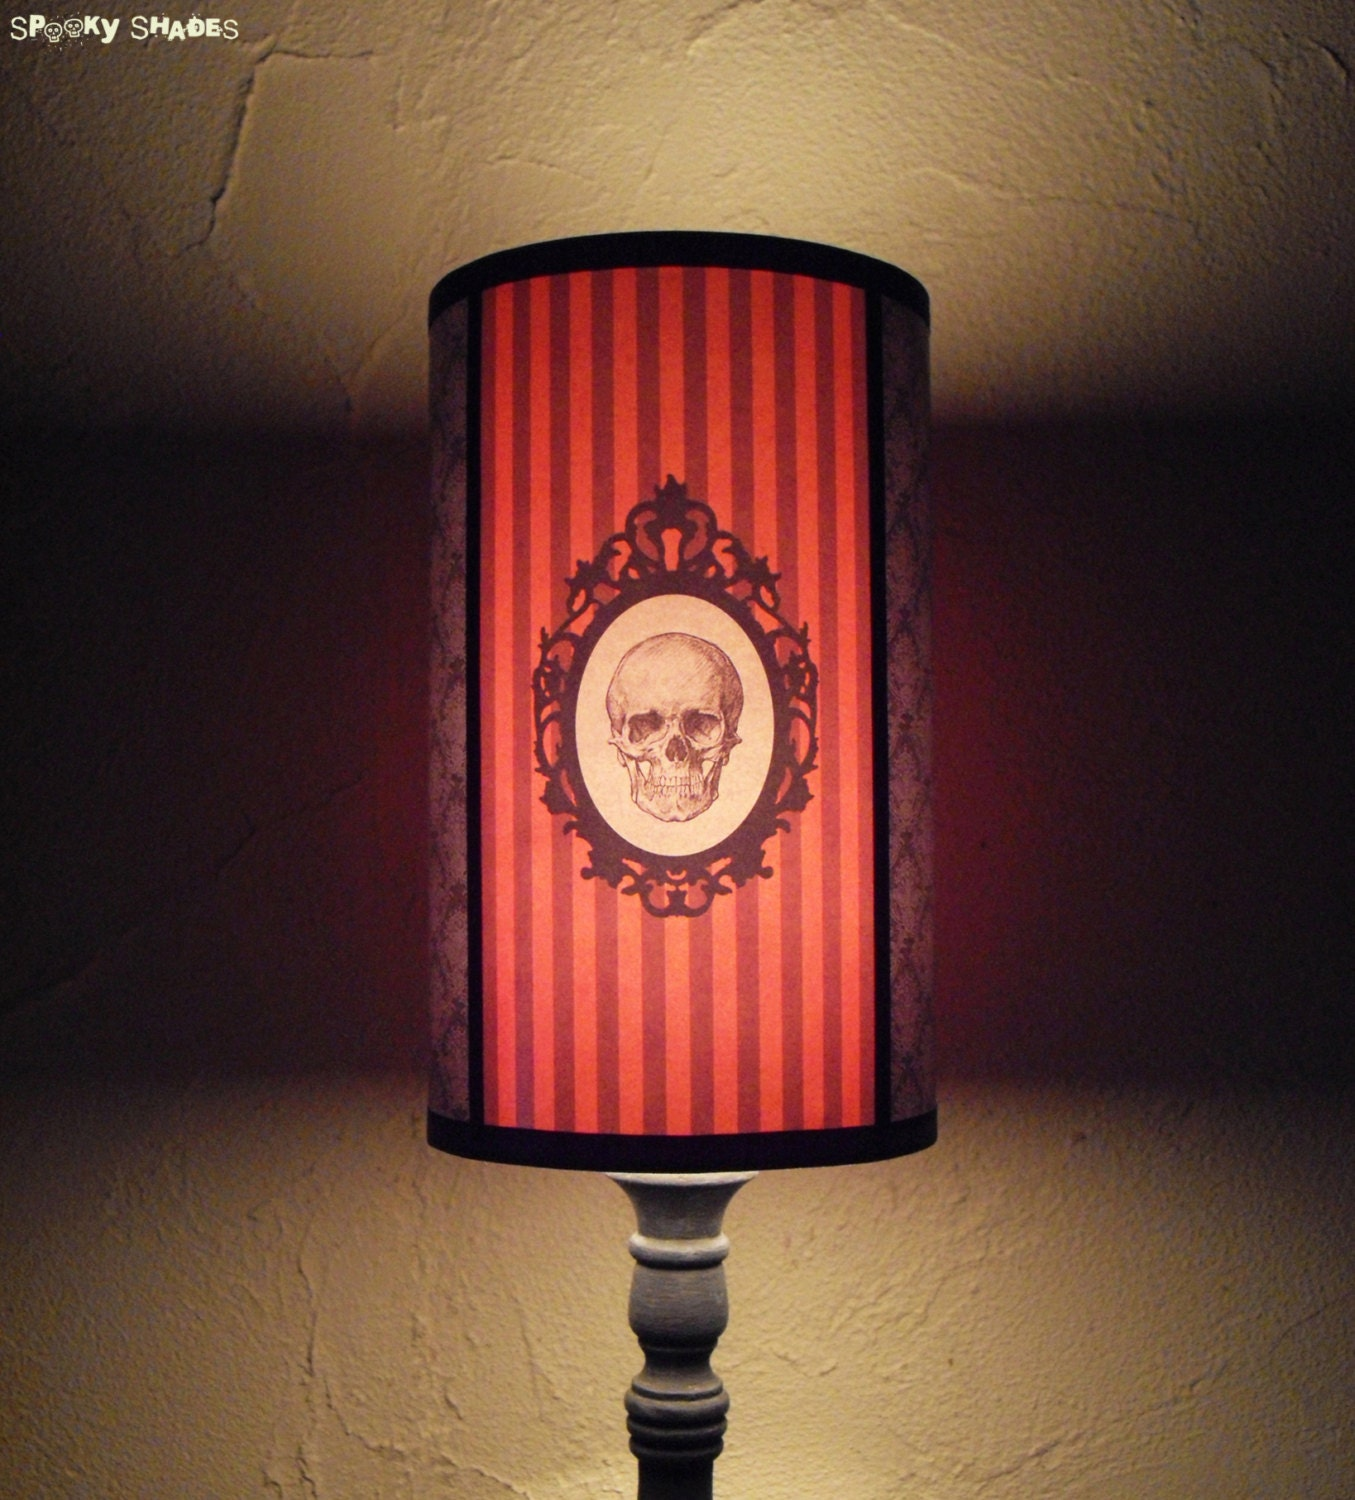 gothic skull orange lamp shade lampshade goth by spookyshades. Black Bedroom Furniture Sets. Home Design Ideas